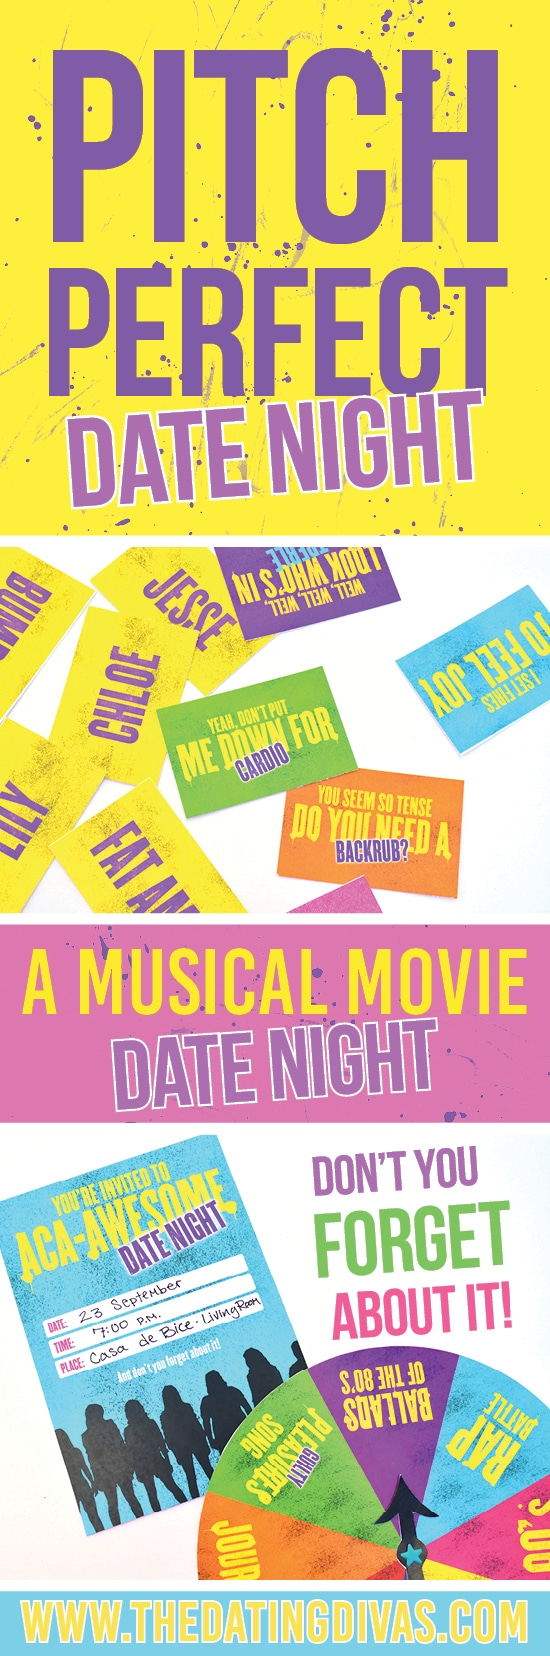 A Pitch Perfect date night!